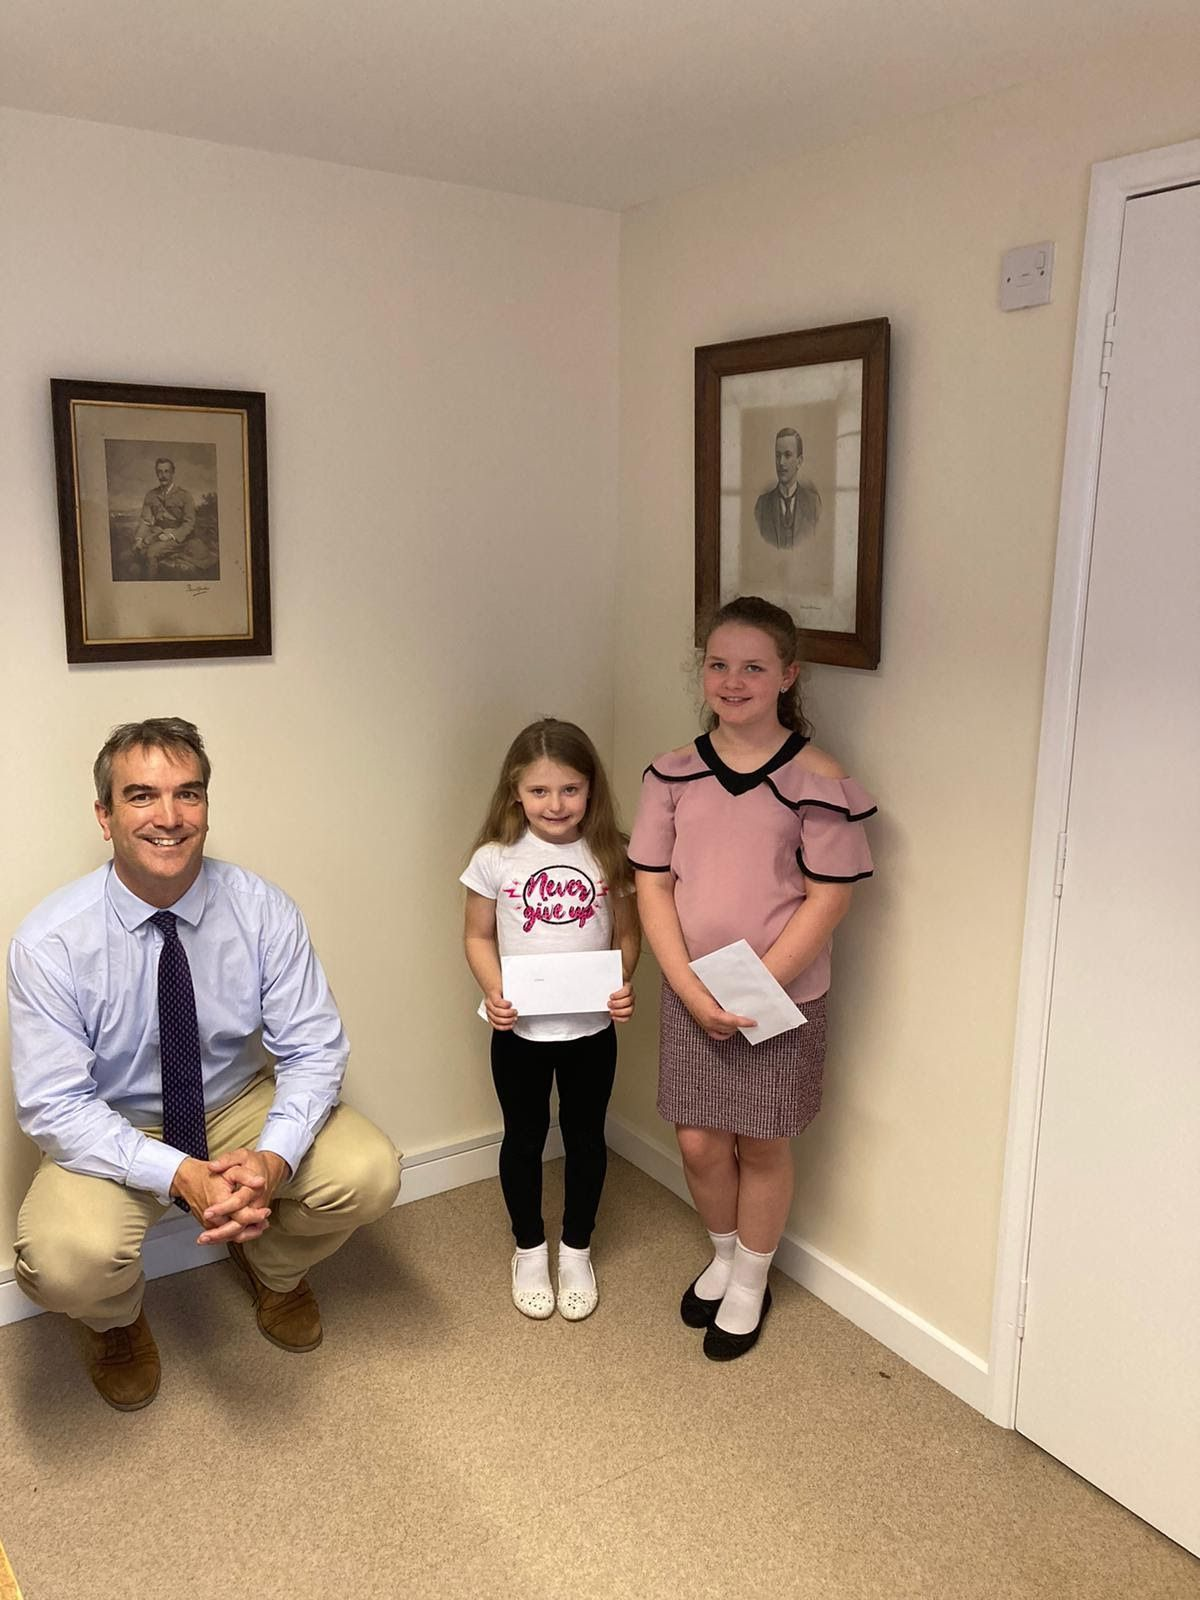 Rob Paul, Estates director, with sisters Chloe Guest and Ellie Guest